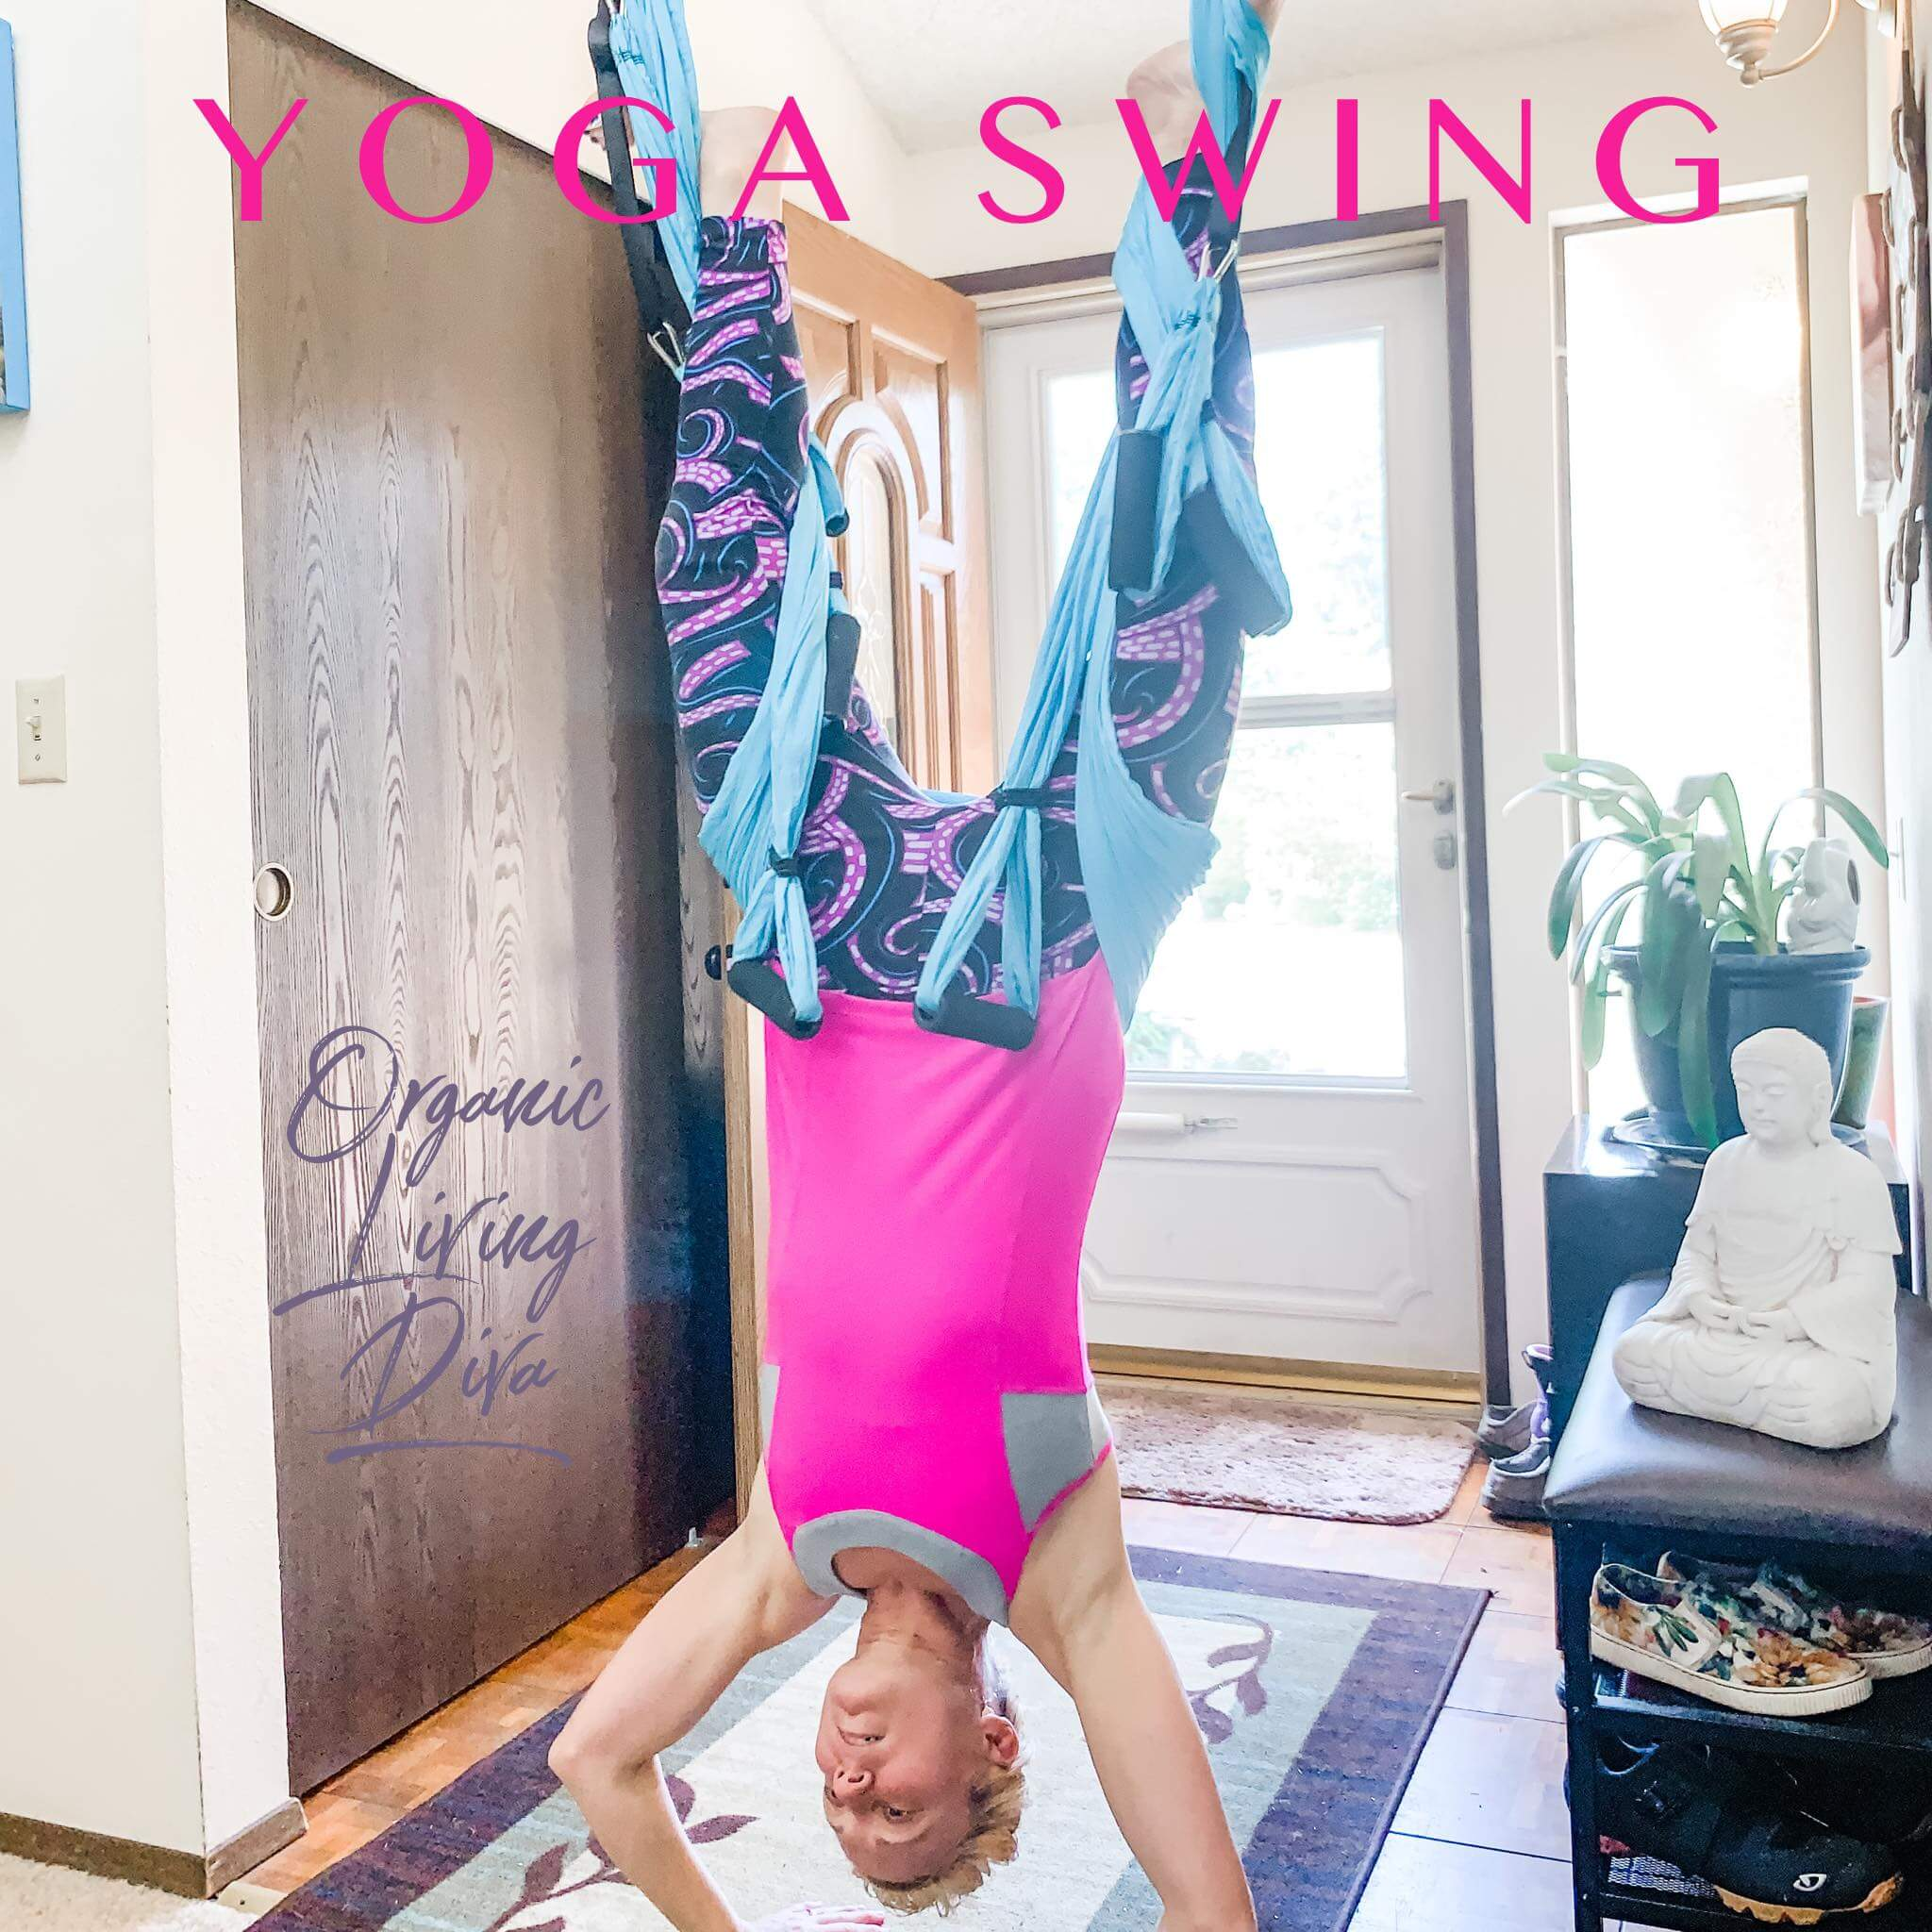 Yoga Swing Inversion